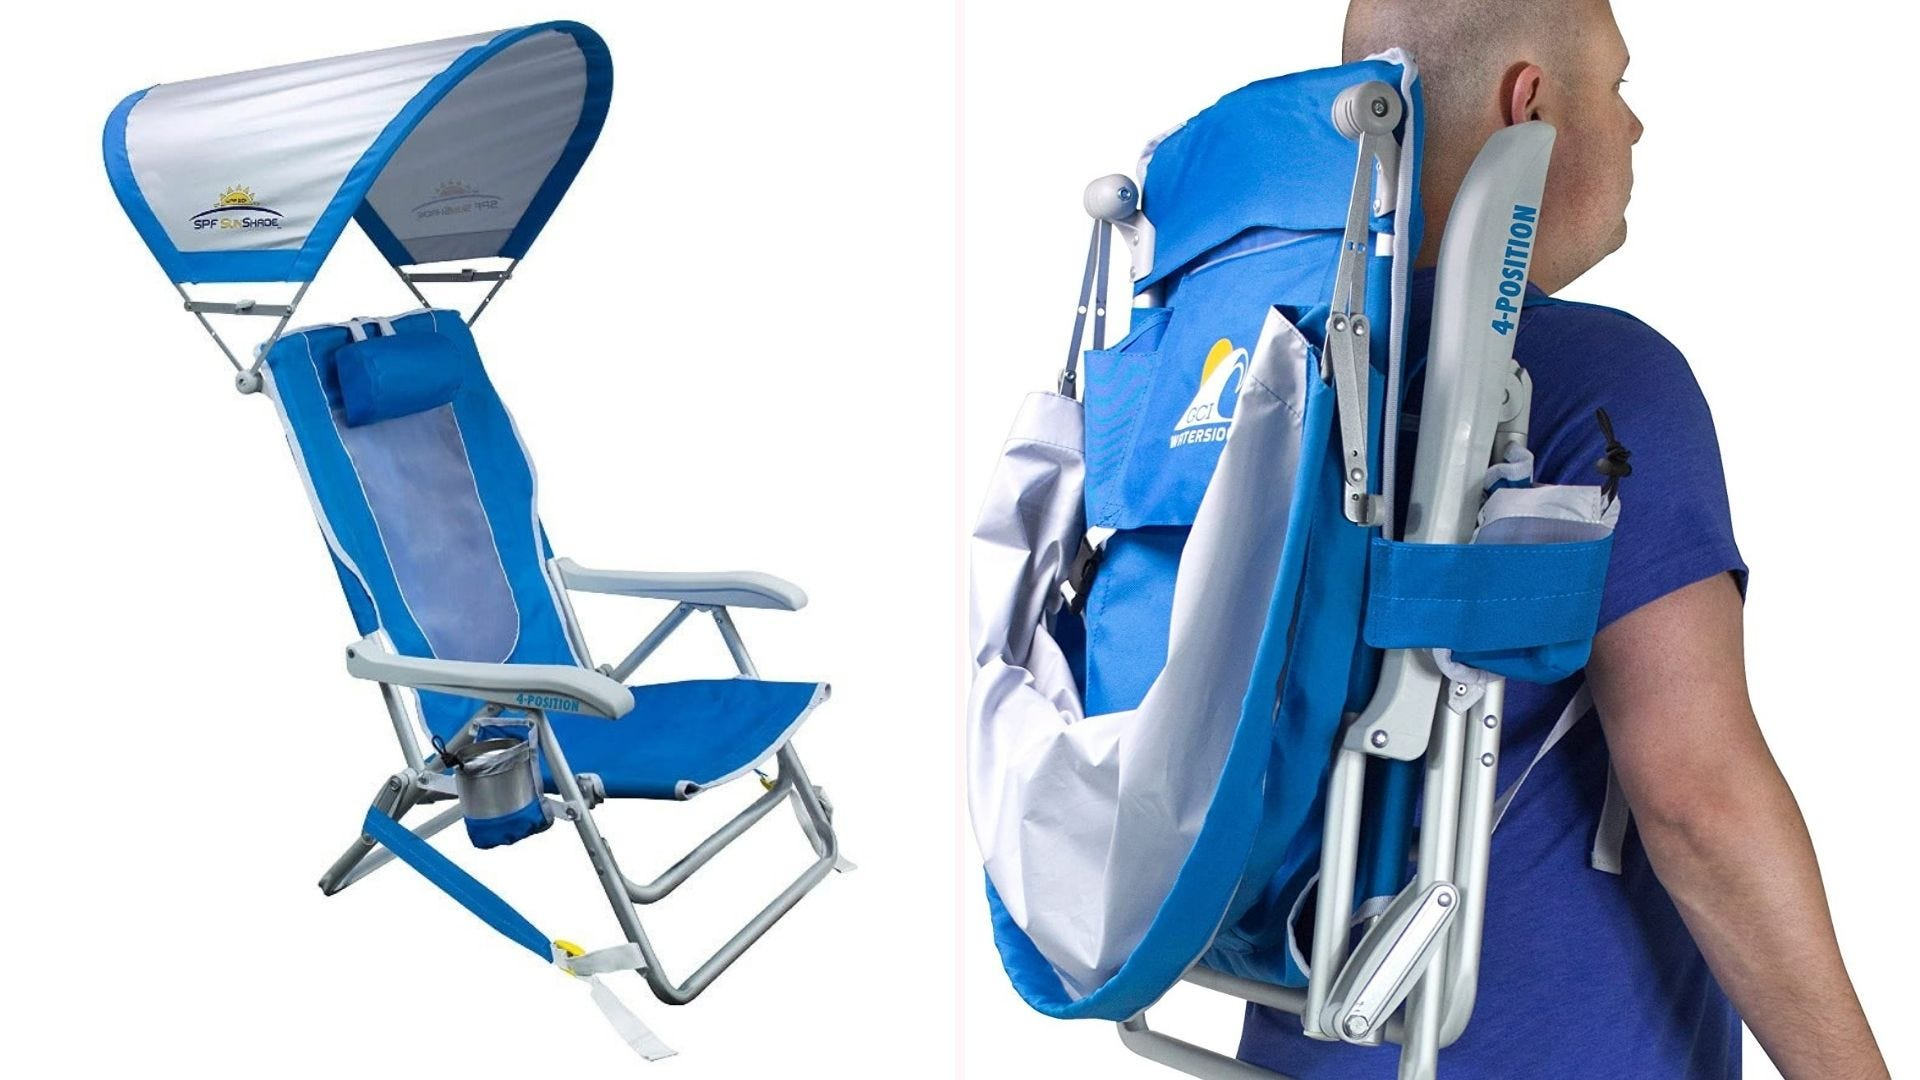 a striped Tommy Bahama beach chair that folds into a backpack shape